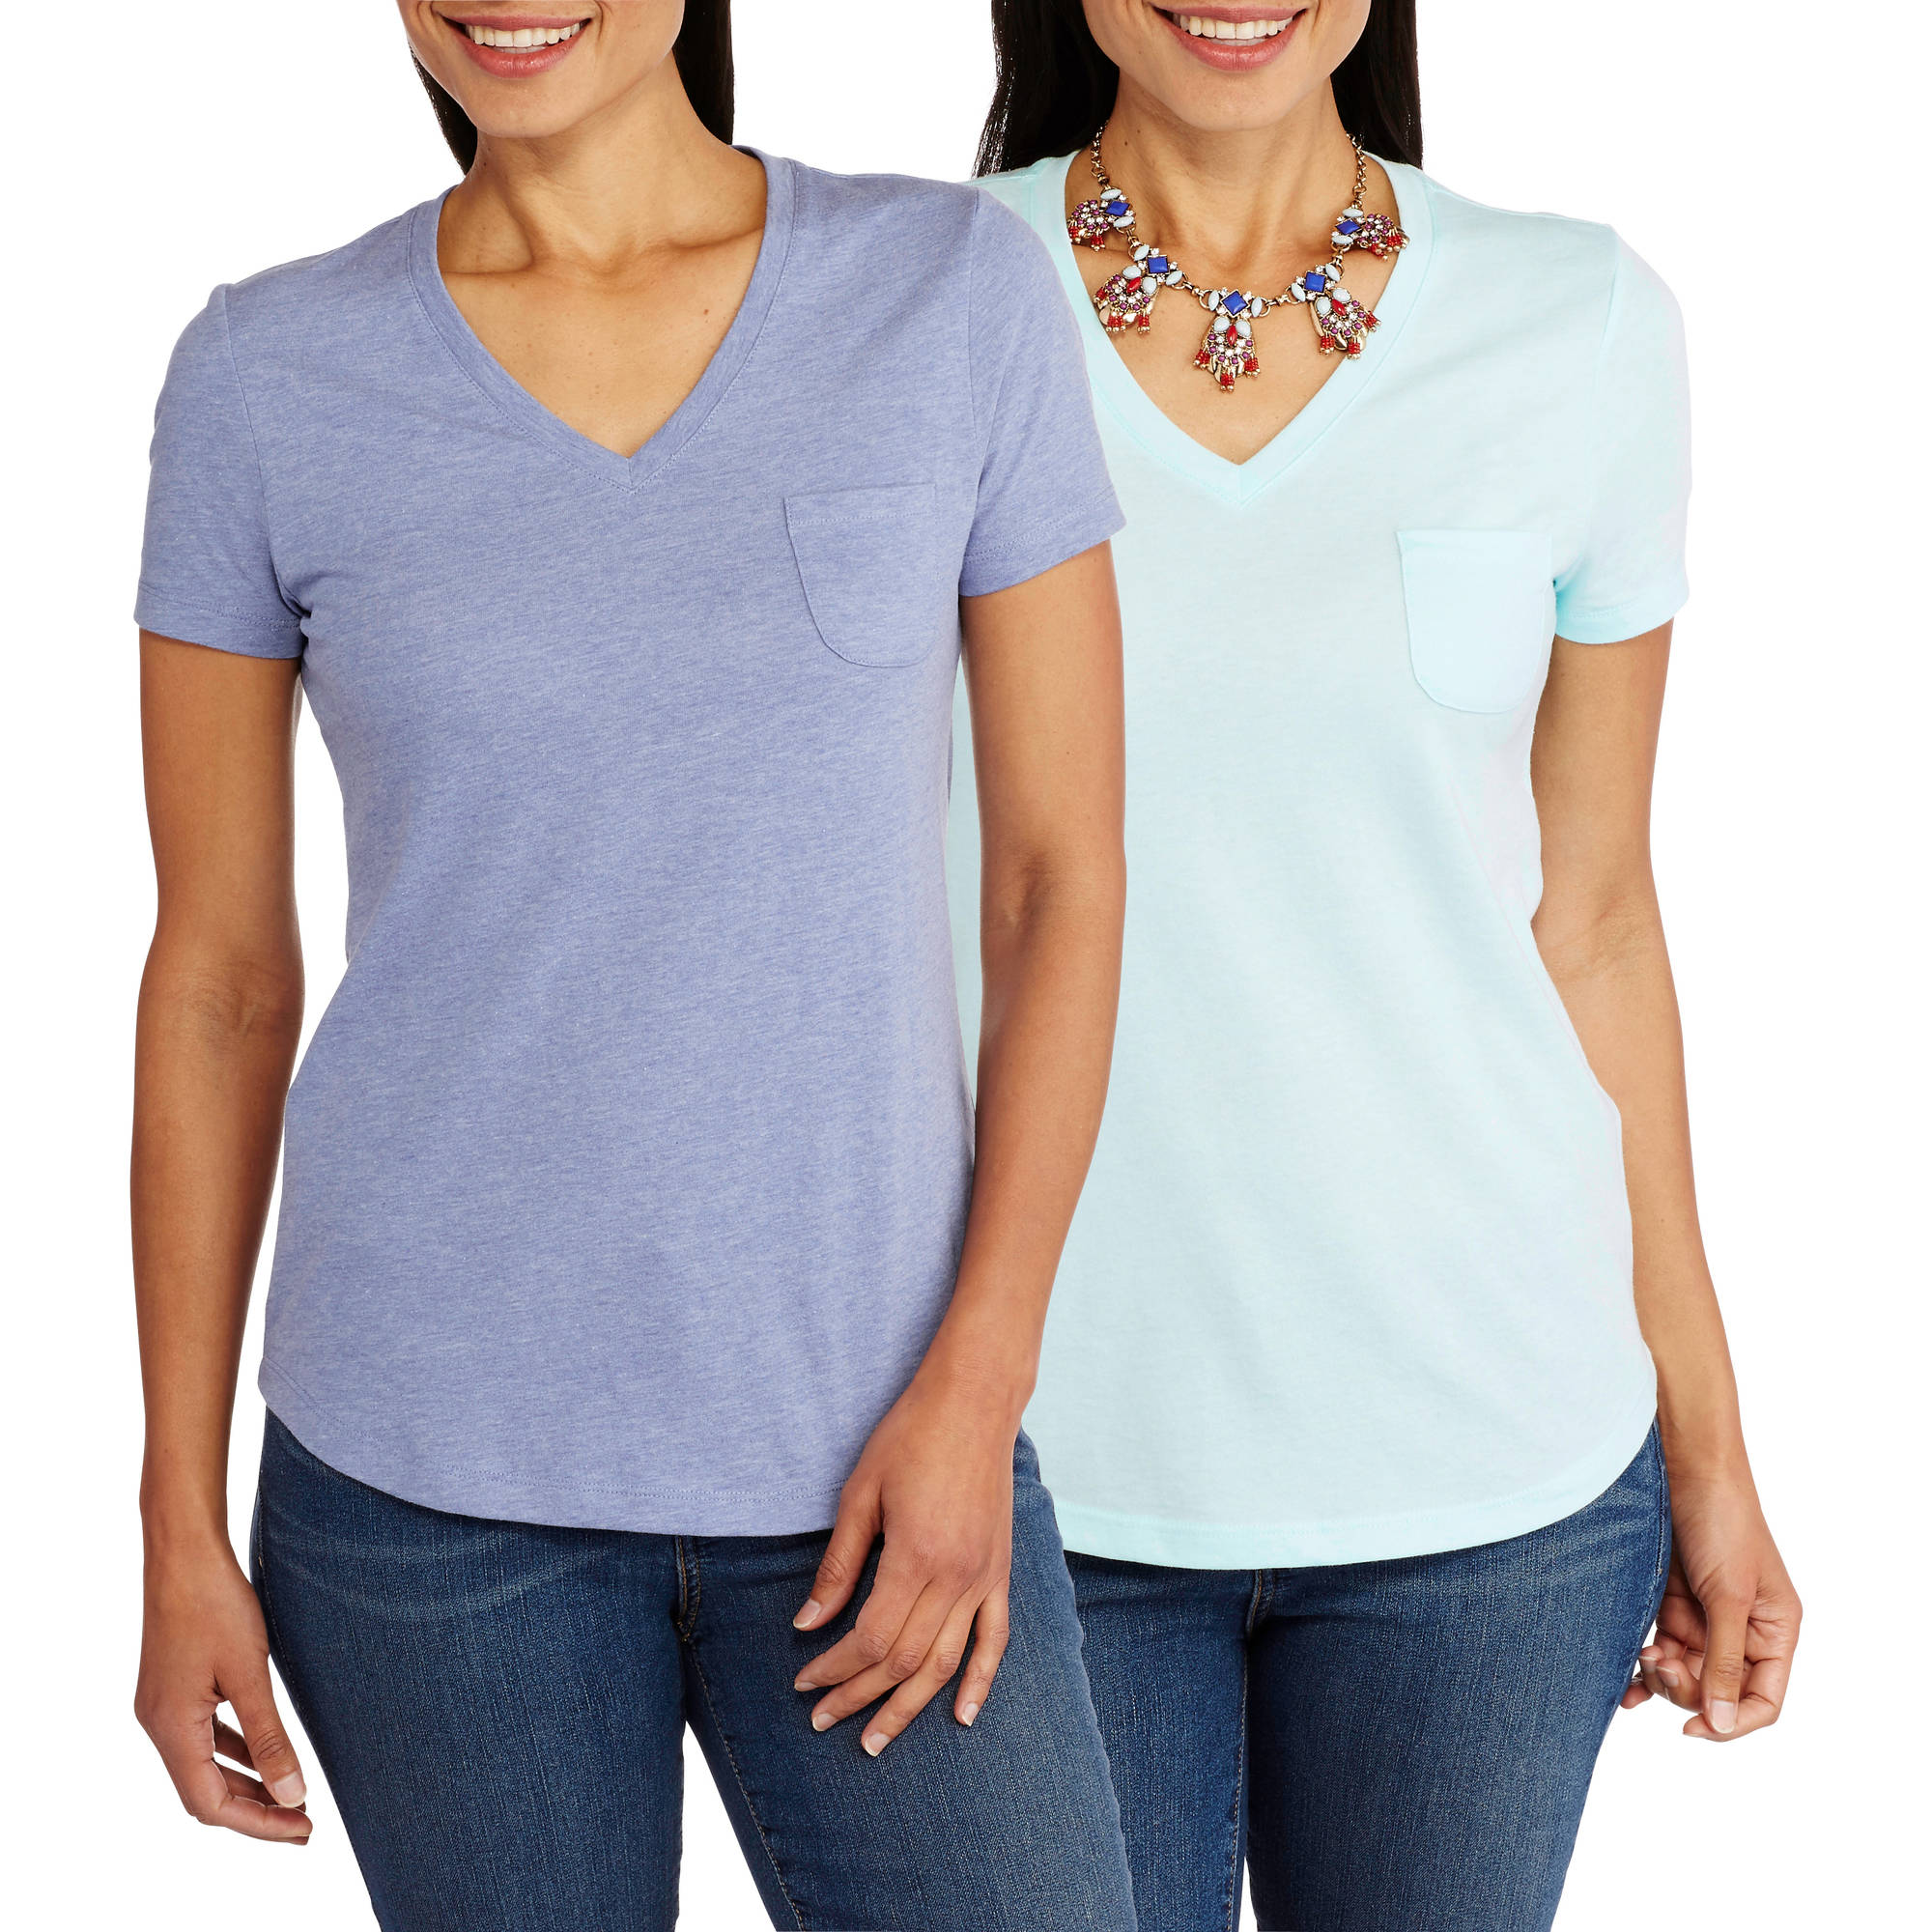 Faded Glory Women's Essential Short Sleeve V-Neck Pocket T-Shirt, 2 Pack Value Bundle